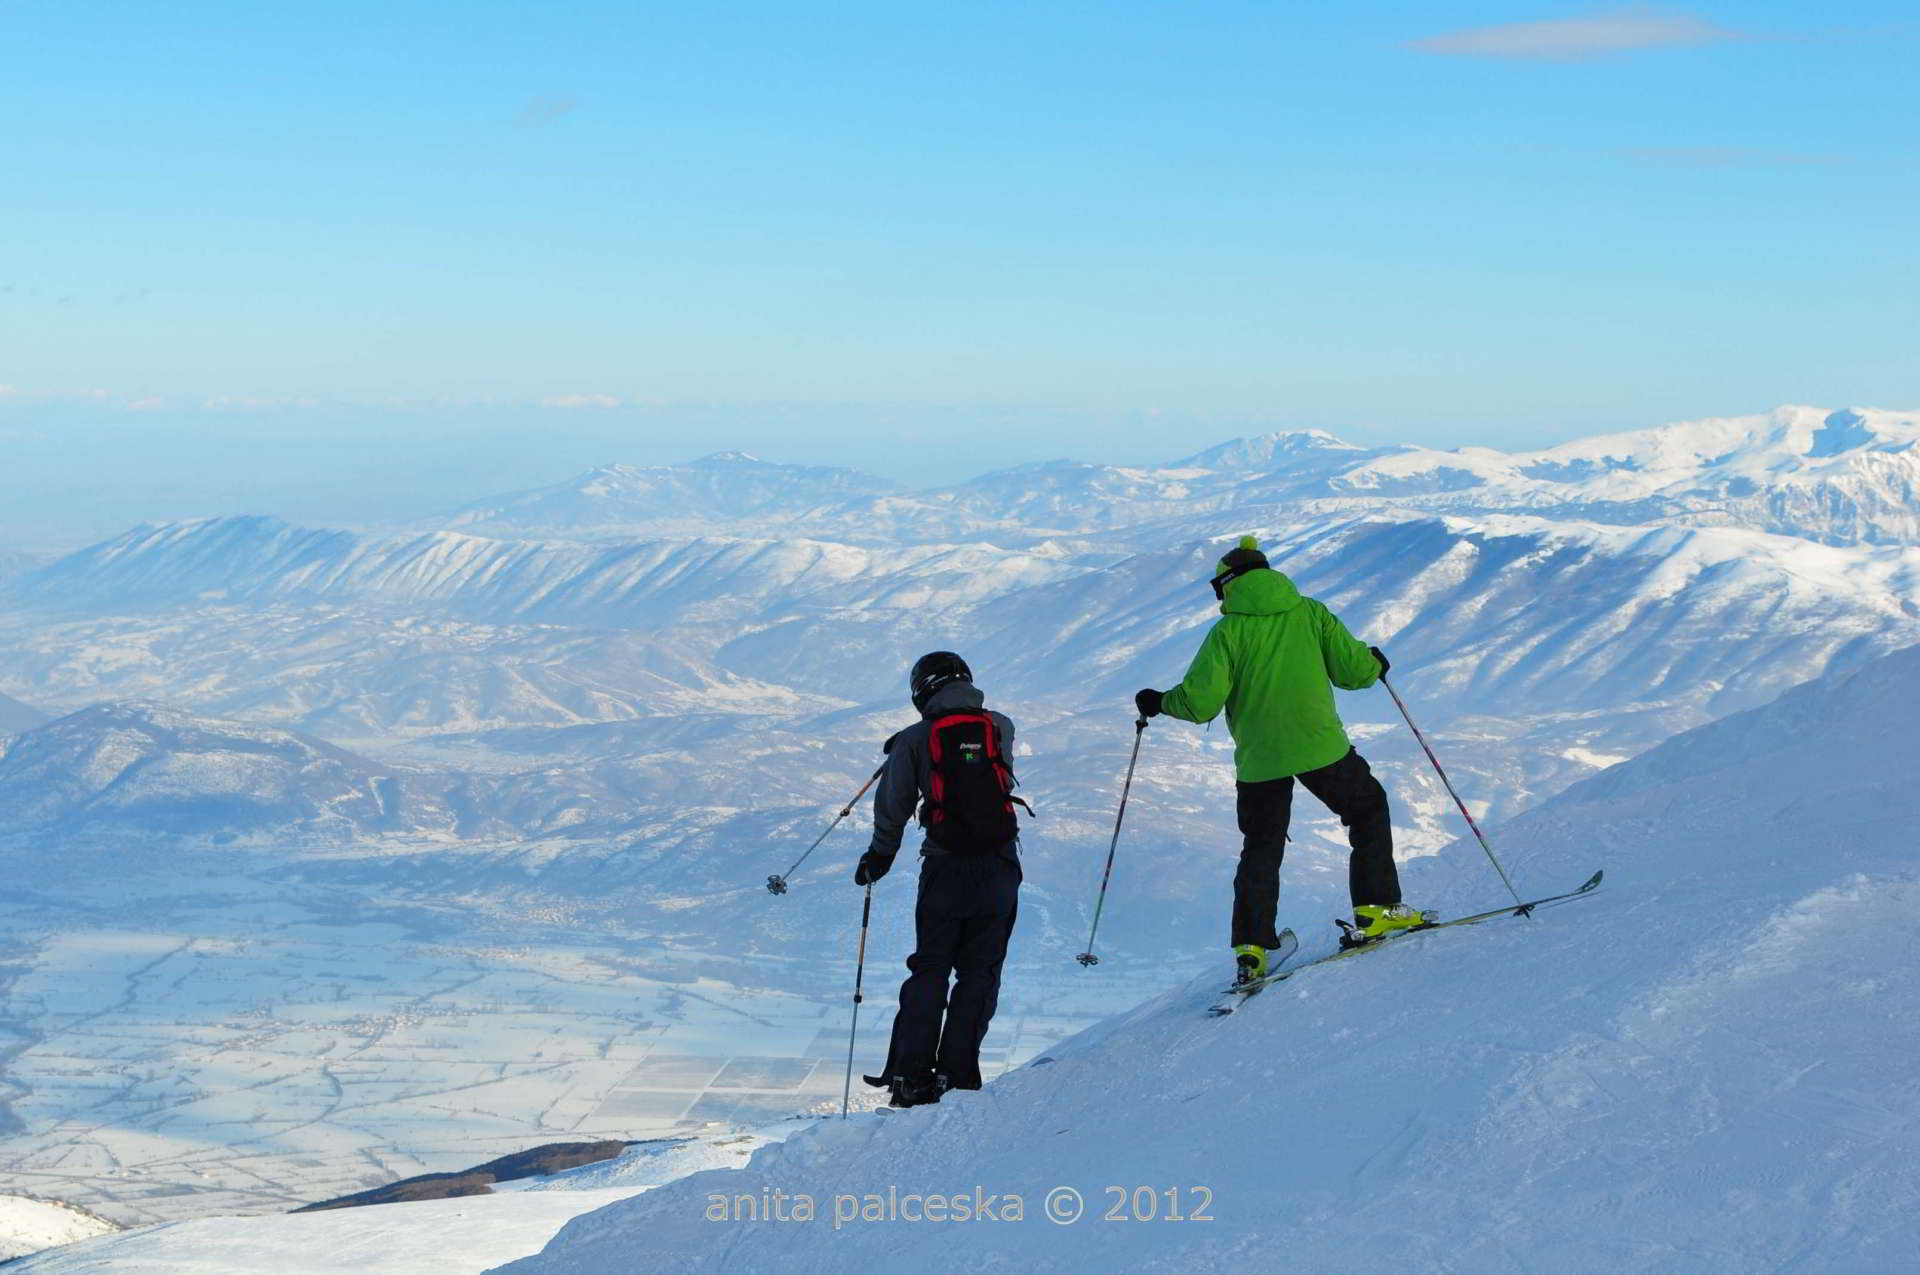 Skiing and winter sports time for macedonia